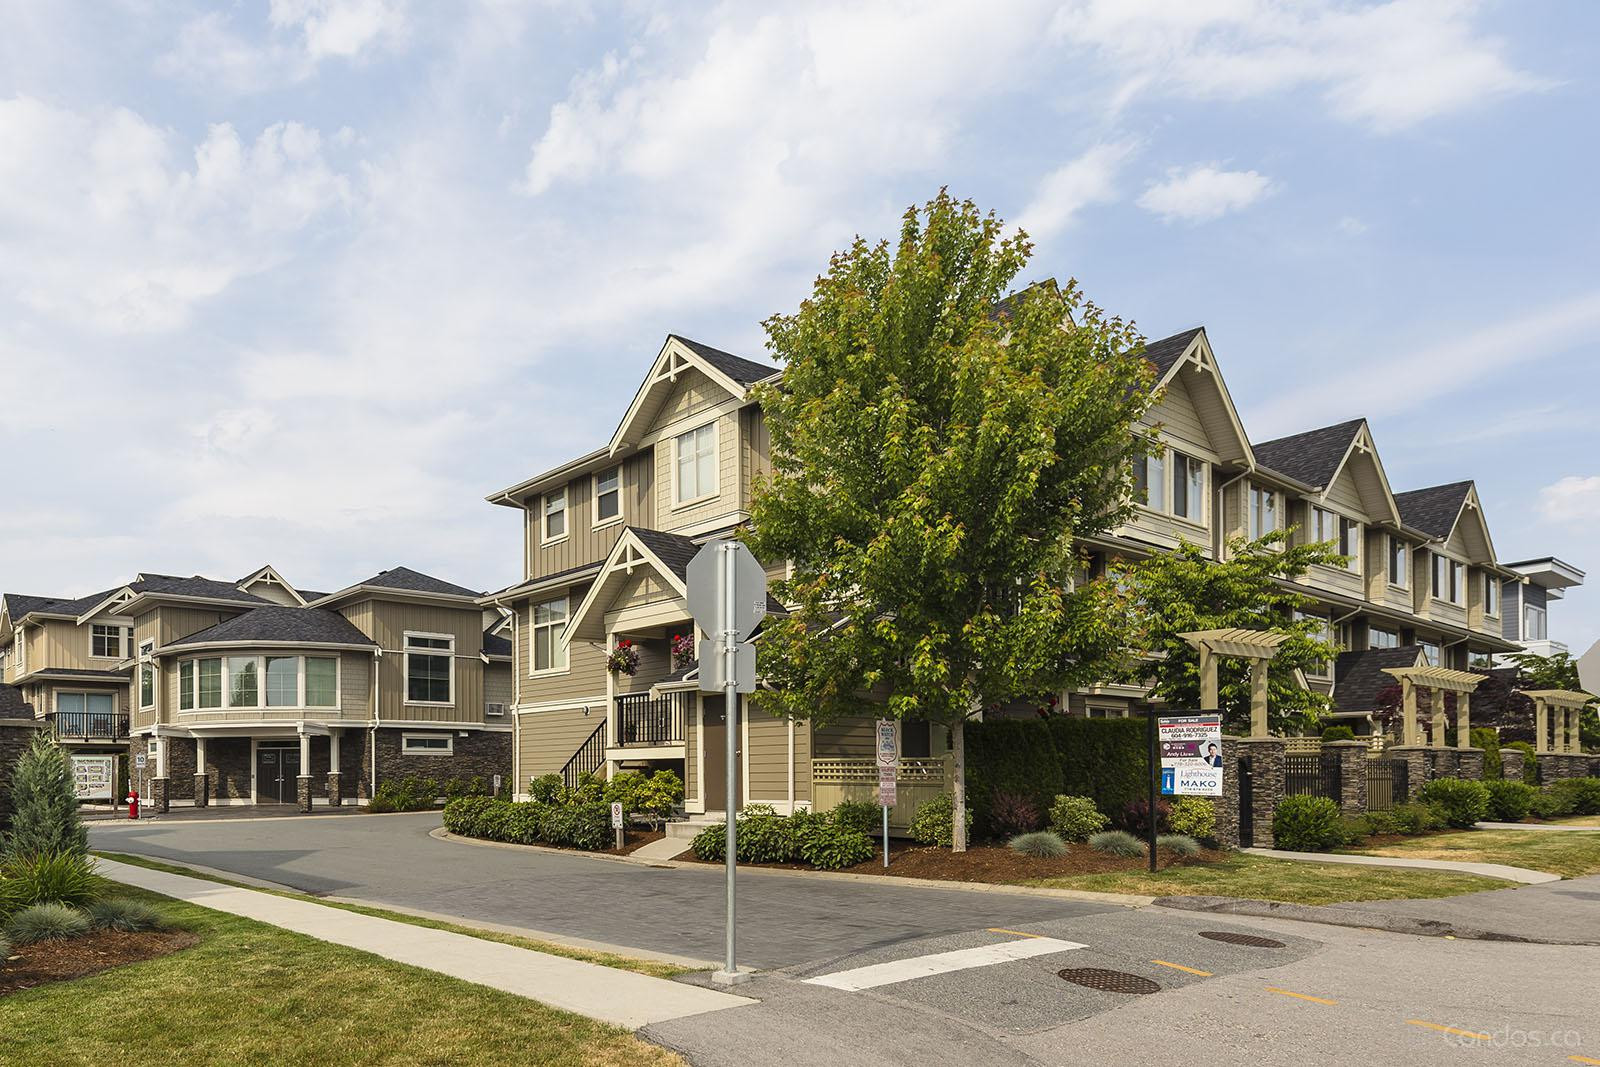 Uptown 2 at 19525 73 Ave, Surrey 1